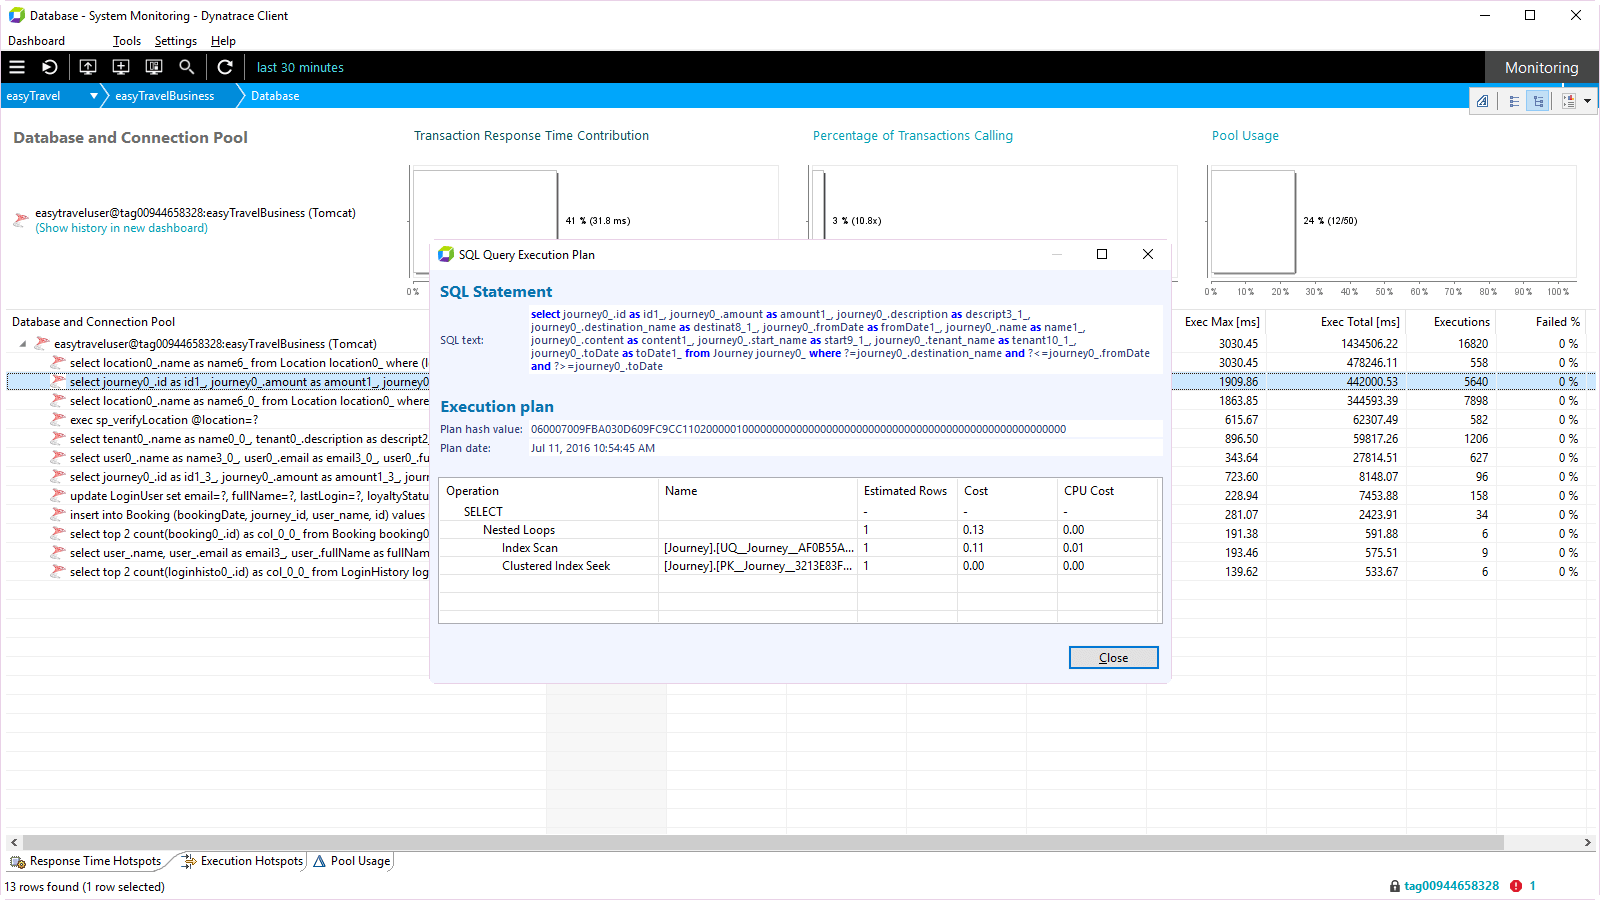 ... and see execution plan details like estimated rows, cost, and CPU cost.